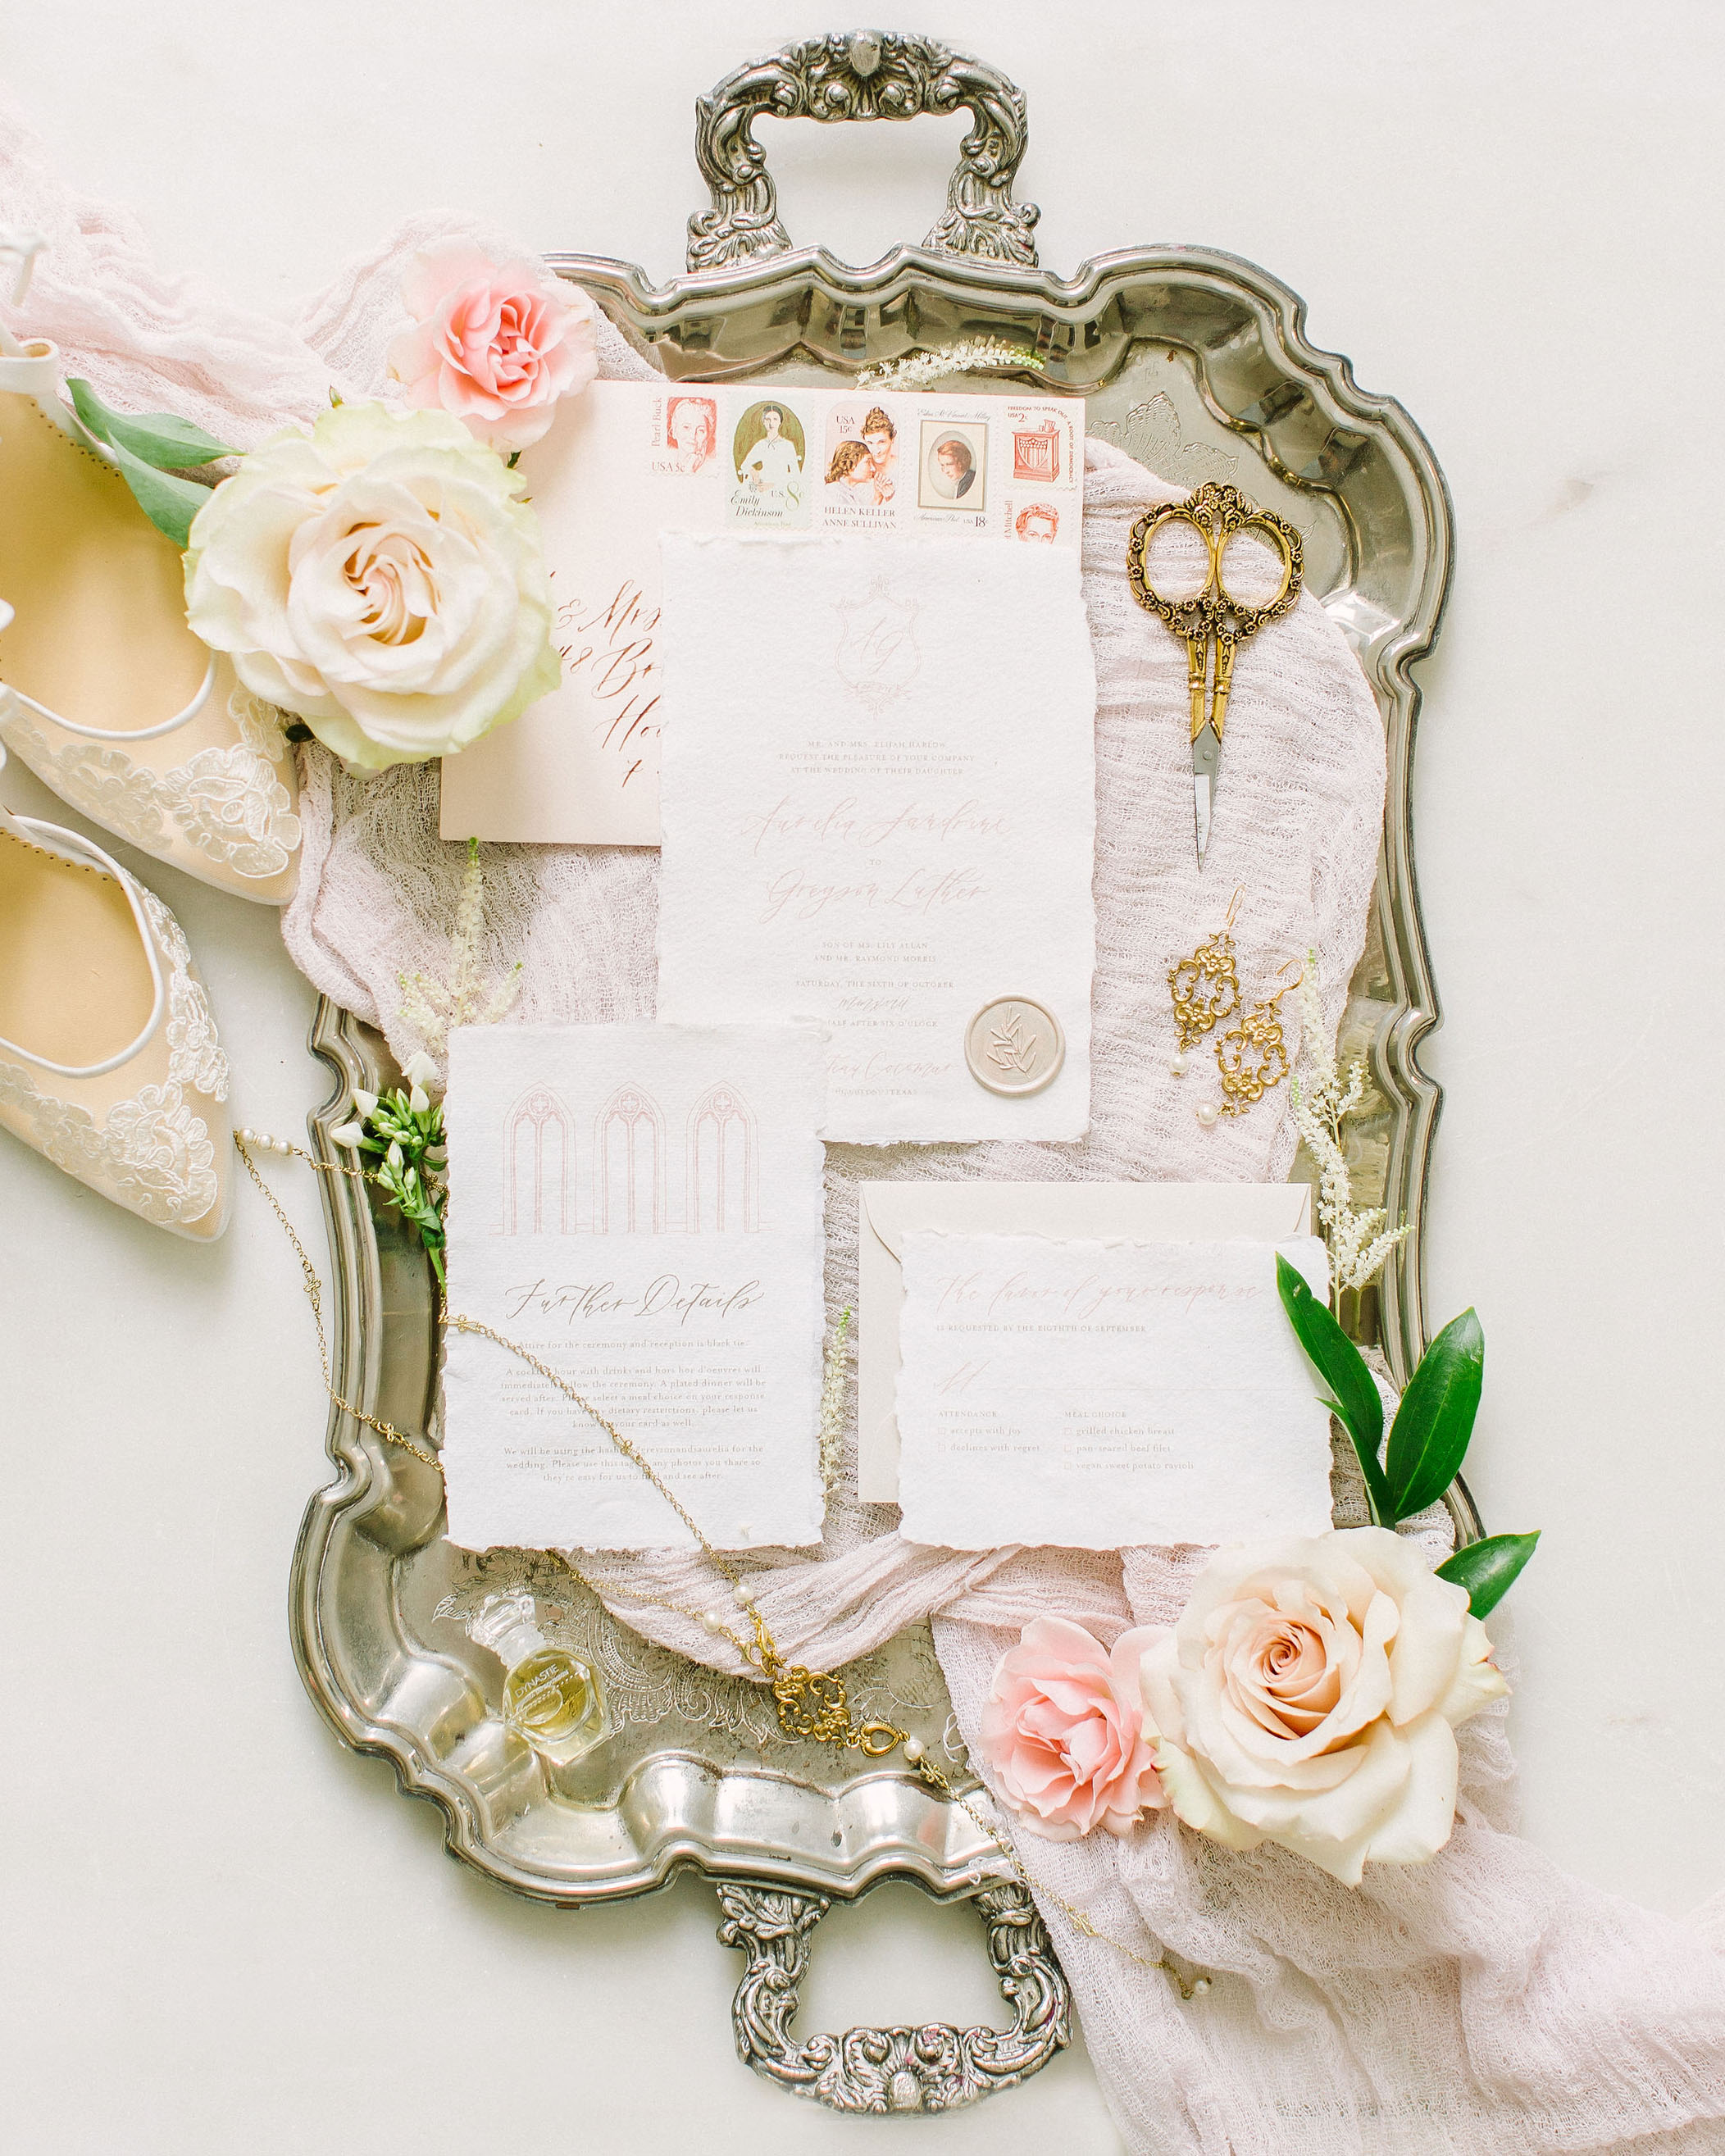 Fine Art Wedding Invitations and Calligraphy by Caitlin O'Bryant Design. Photo by Kate Elizabeth Photography.